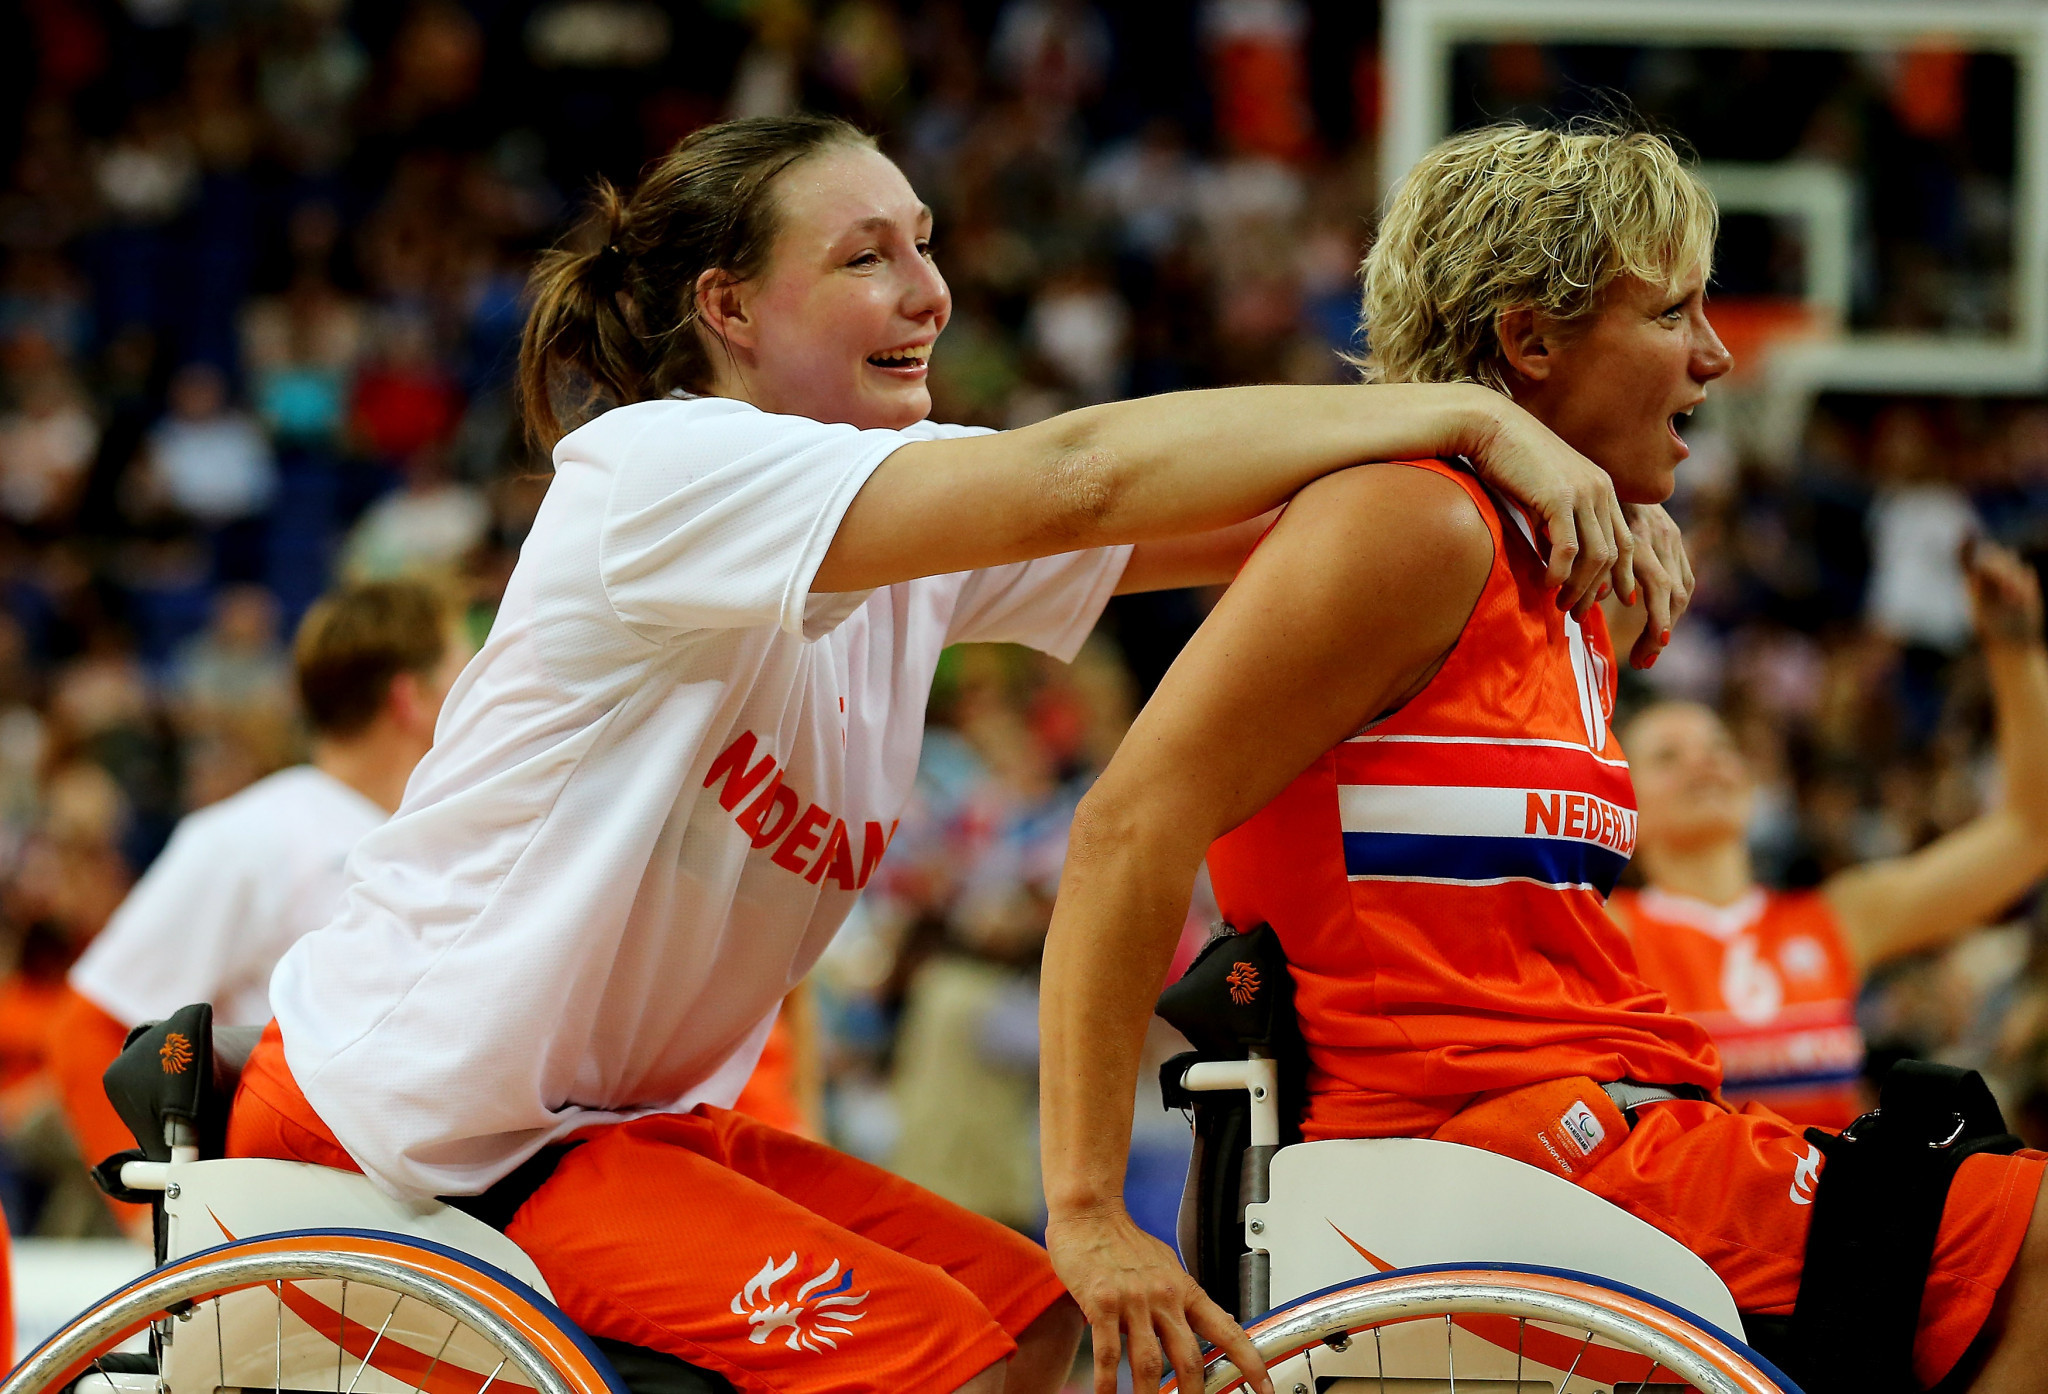 Mariska Beijer is nominated after The Netherlands' historic win in the 2018 Wheelchair Basketball World Championships ©Getty Images